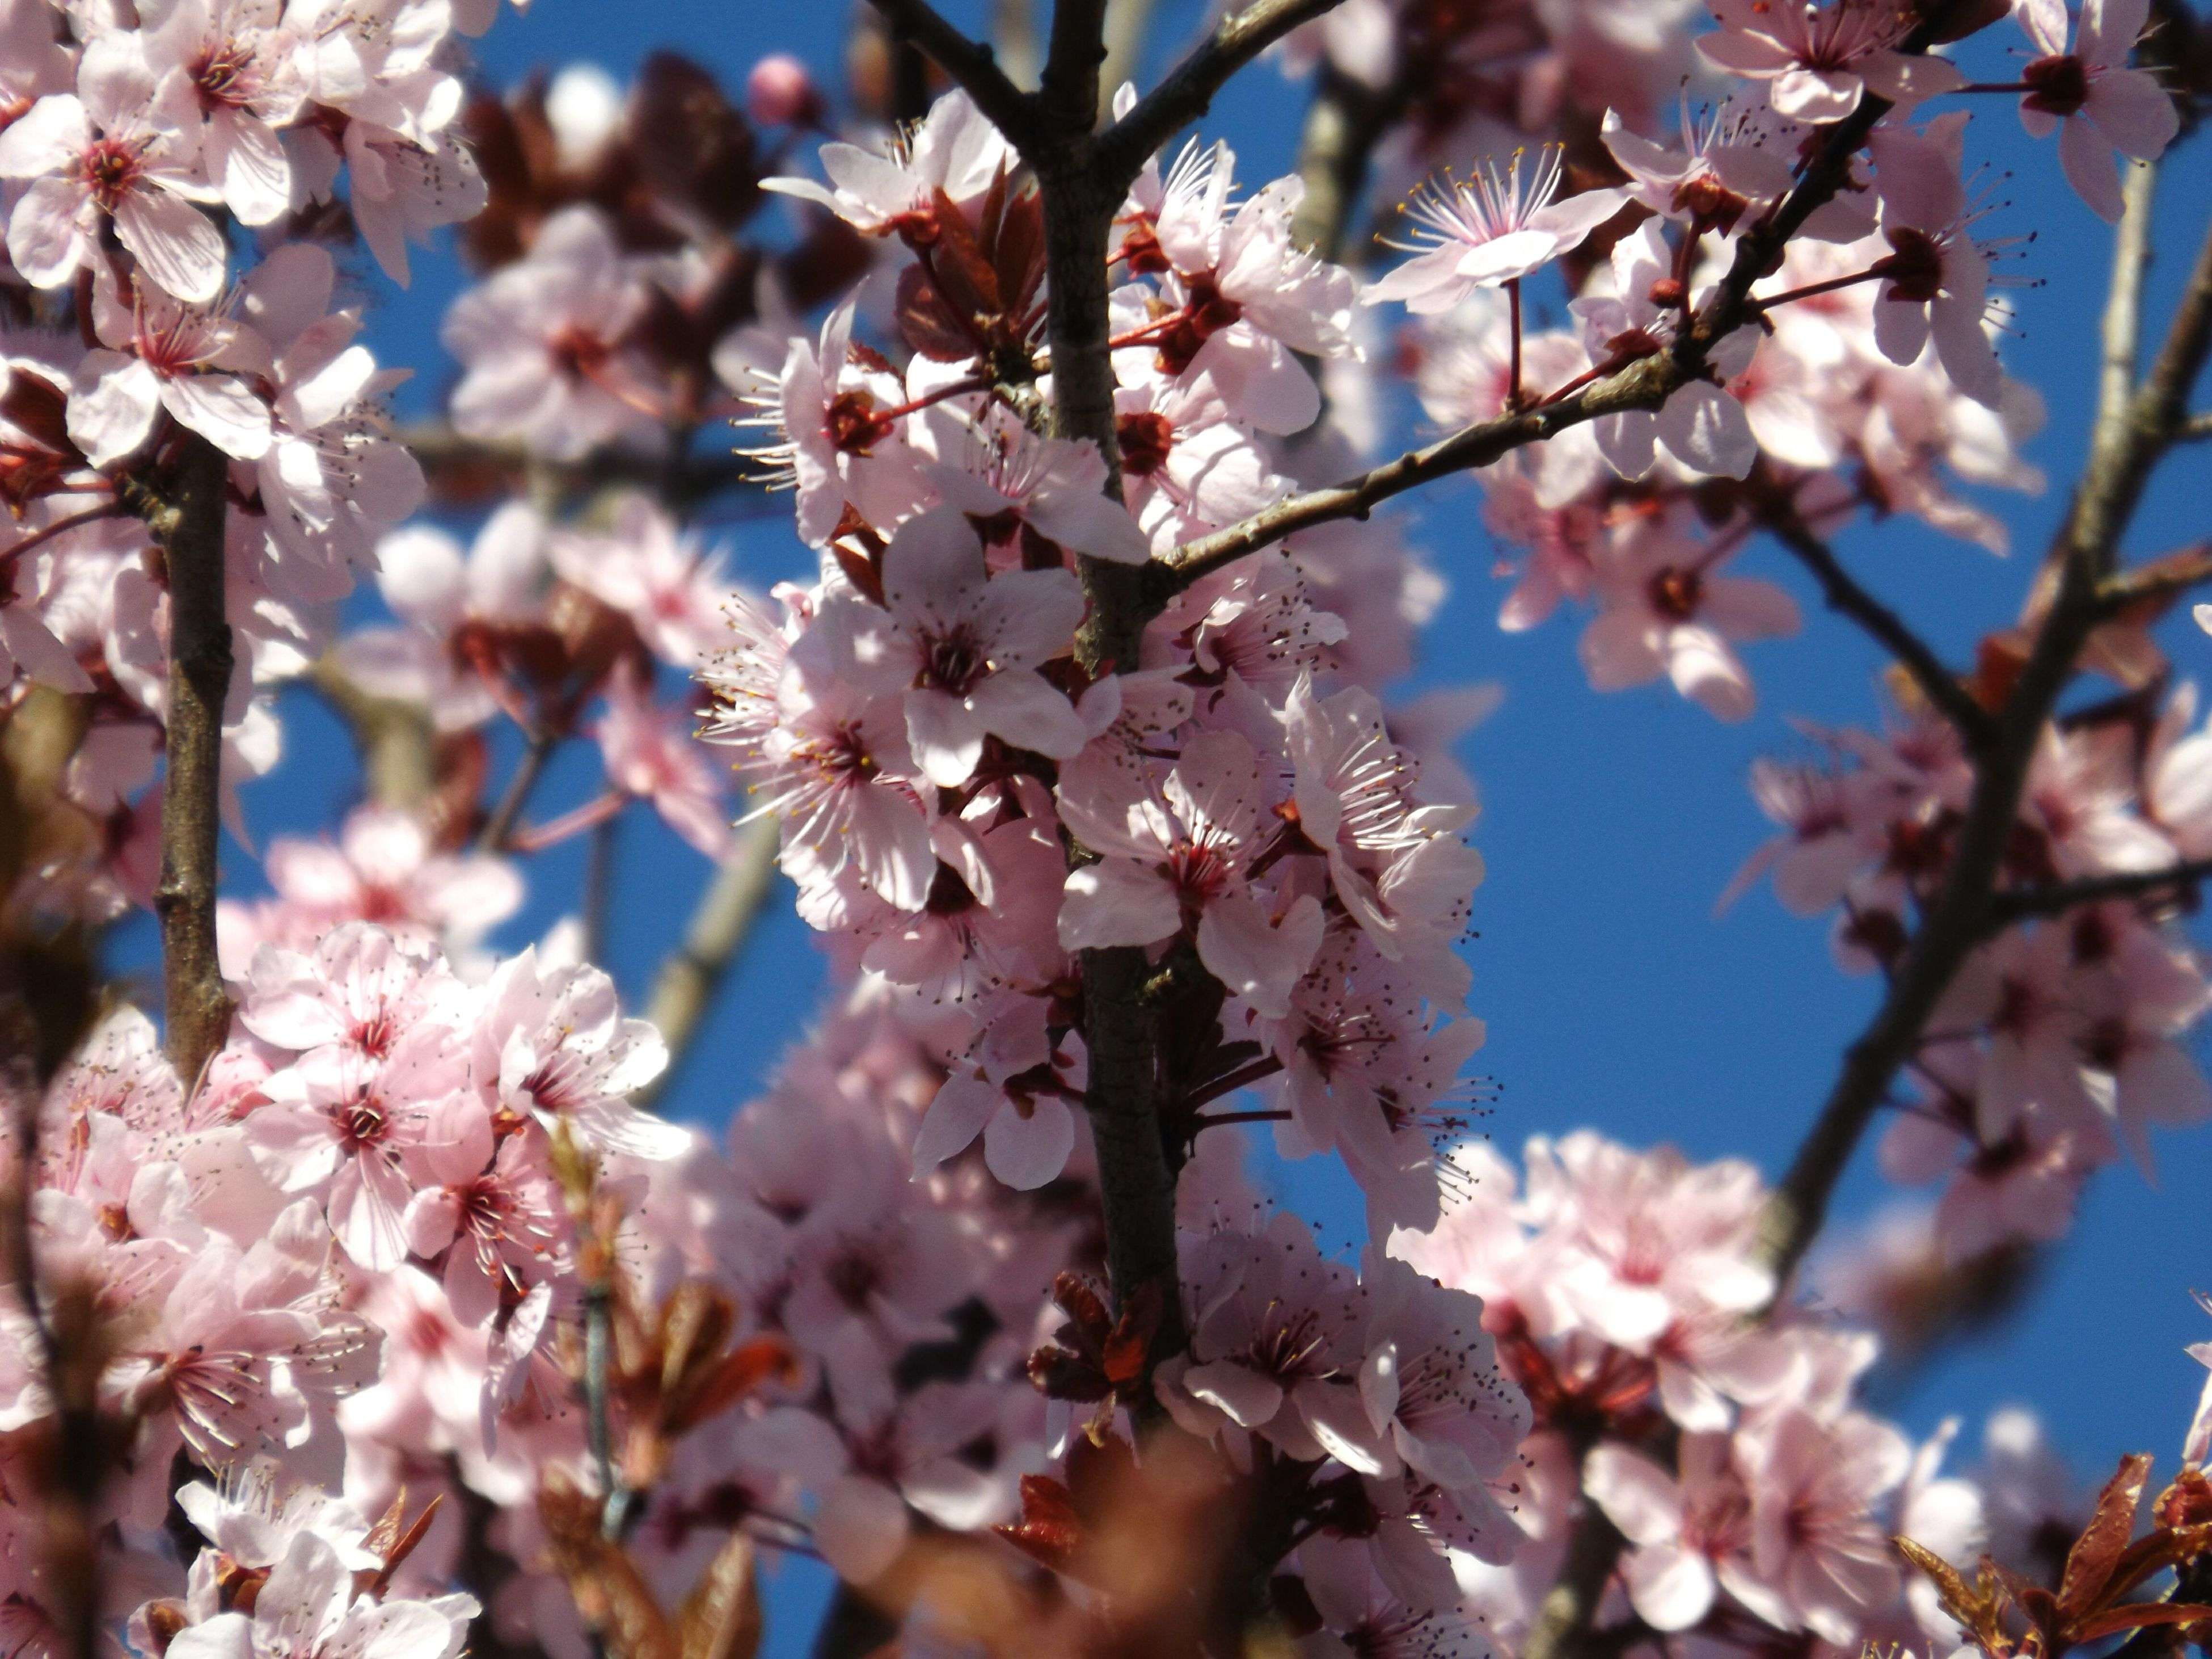 growth, nature, beauty in nature, flower, tree, fragility, springtime, blossom, branch, freshness, no people, sunlight, close-up, petal, outdoors, day, flower head, sky, plum blossom